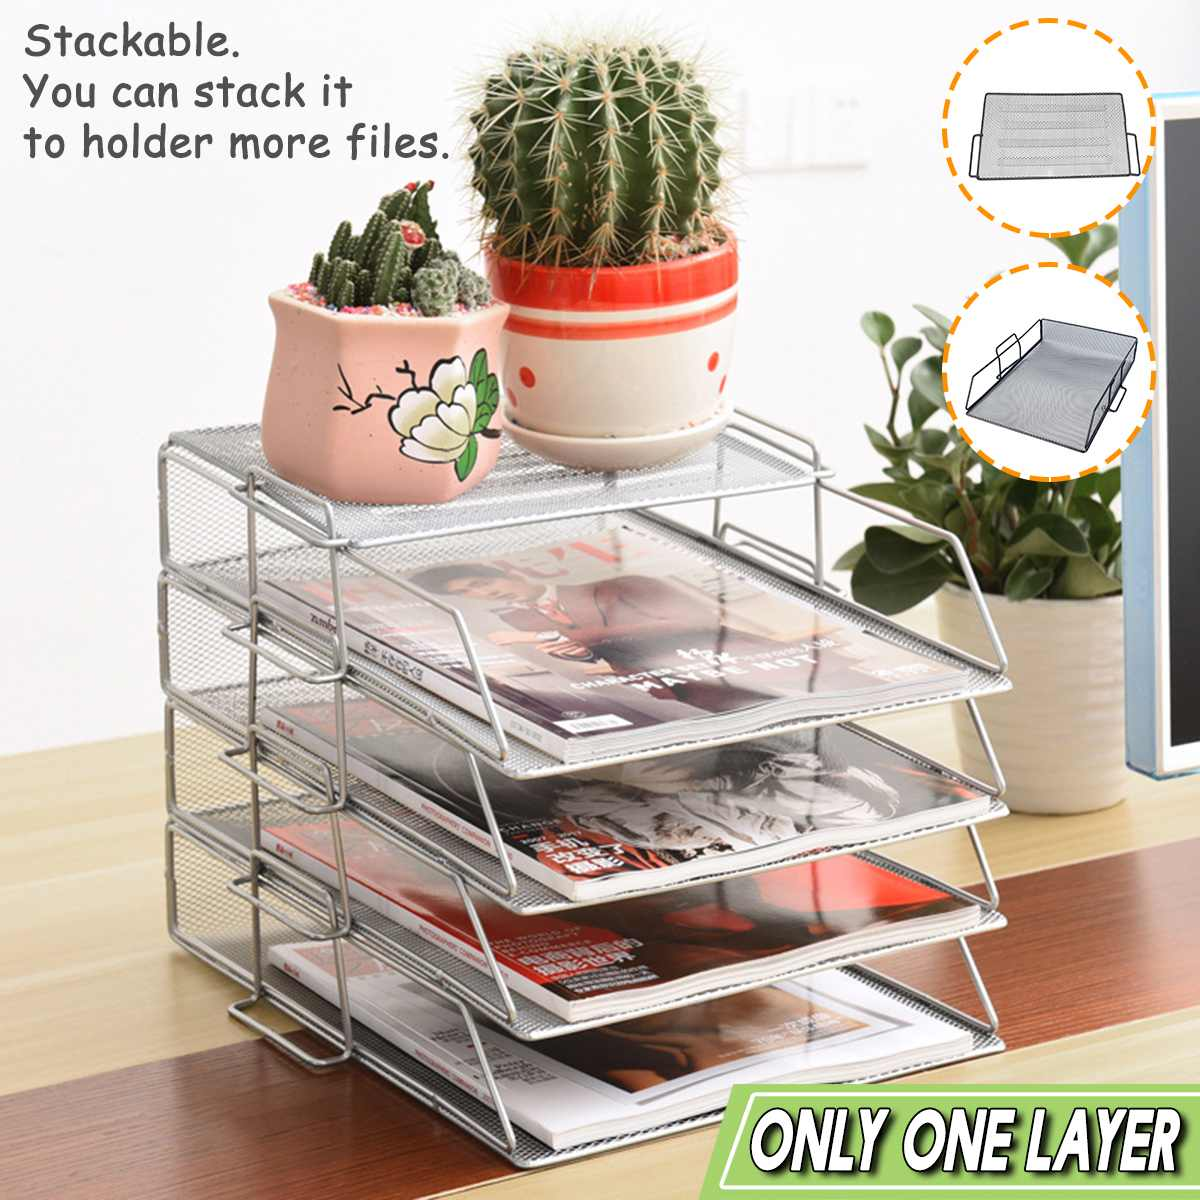 Stackable Iron Mesh A4 Paper Organizer Document Top Cover Of File Holder Desktop Office Book Magazine Newspaper Storage Tray Top